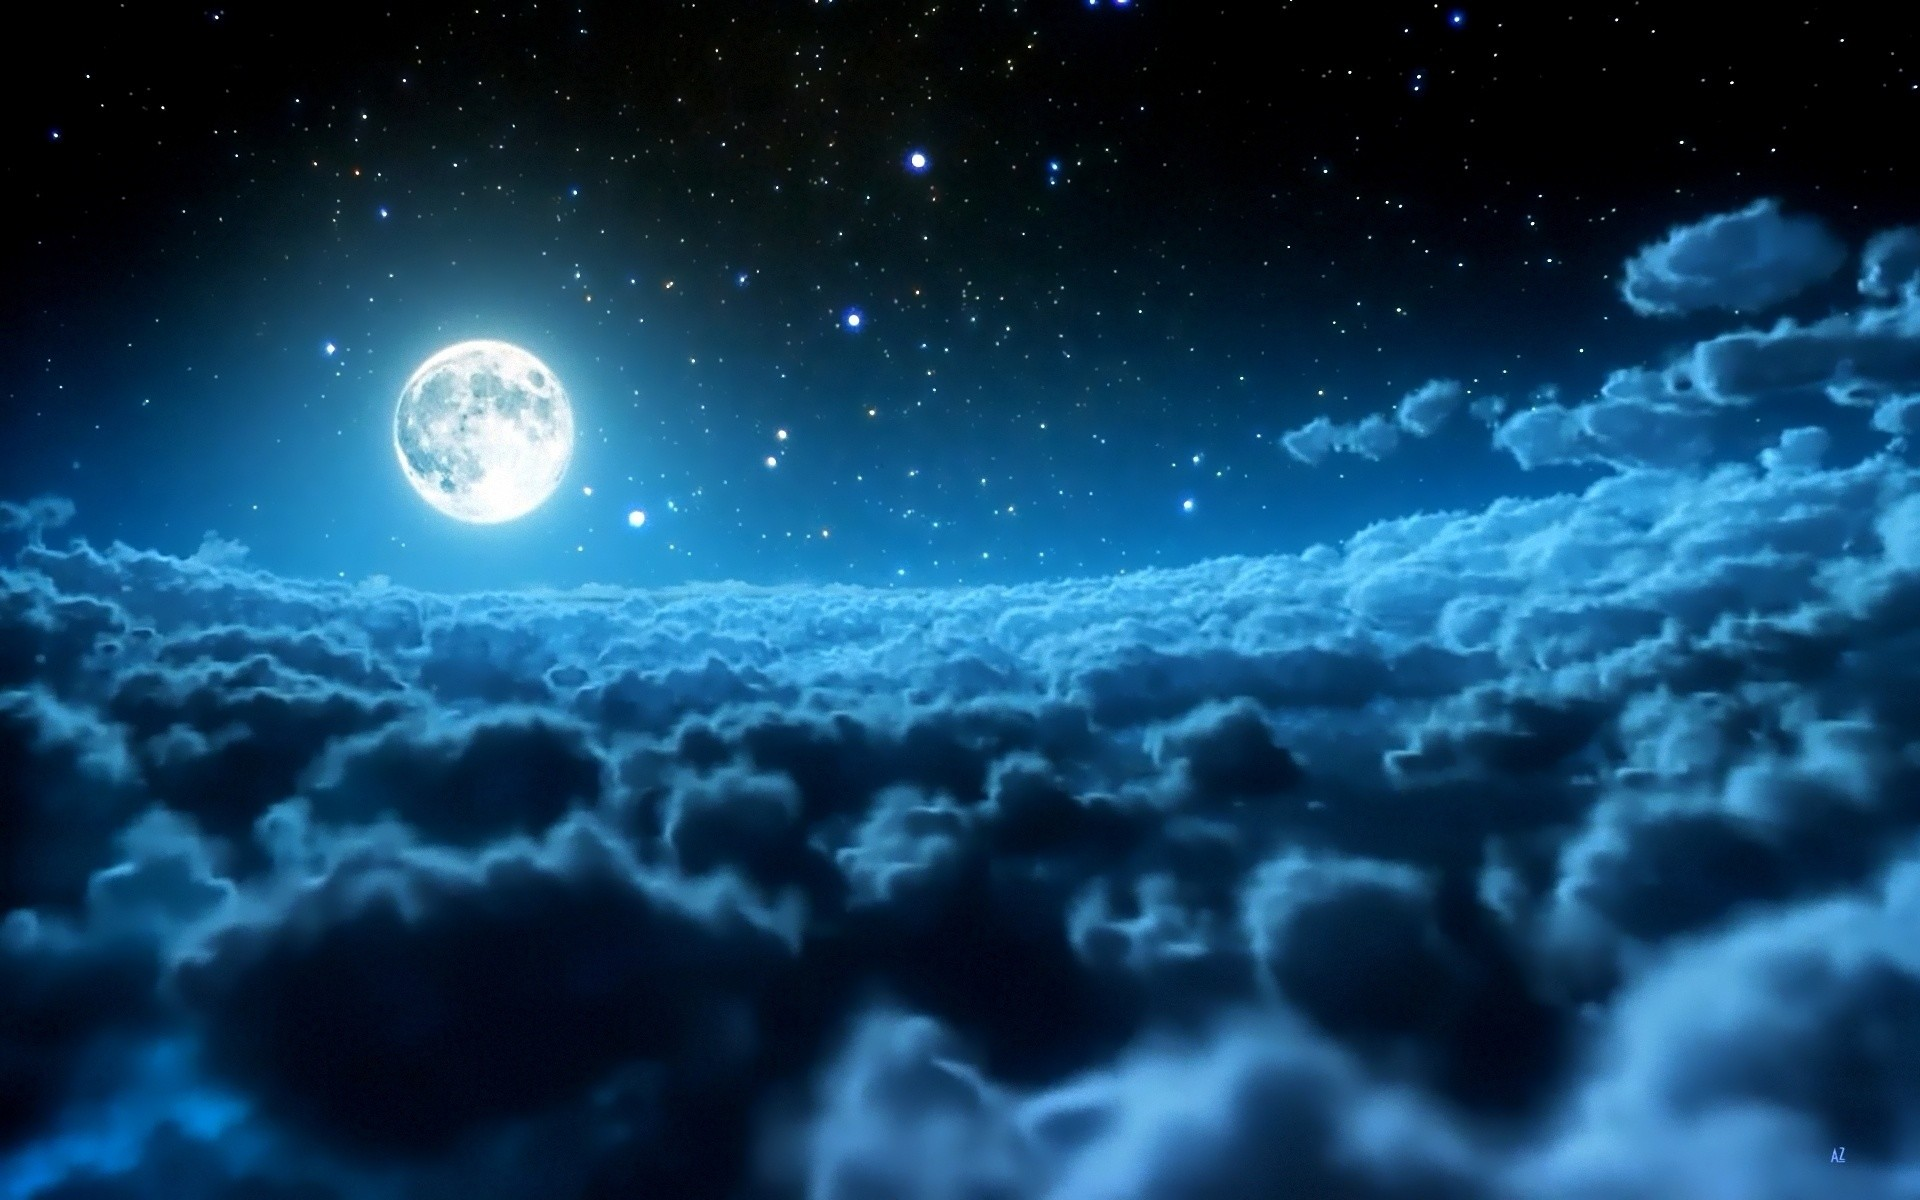 Moon Pictures For Desktop Wallpaper 1920 x 1200 px 692.31 KB iphone iphone  stars crescent blue